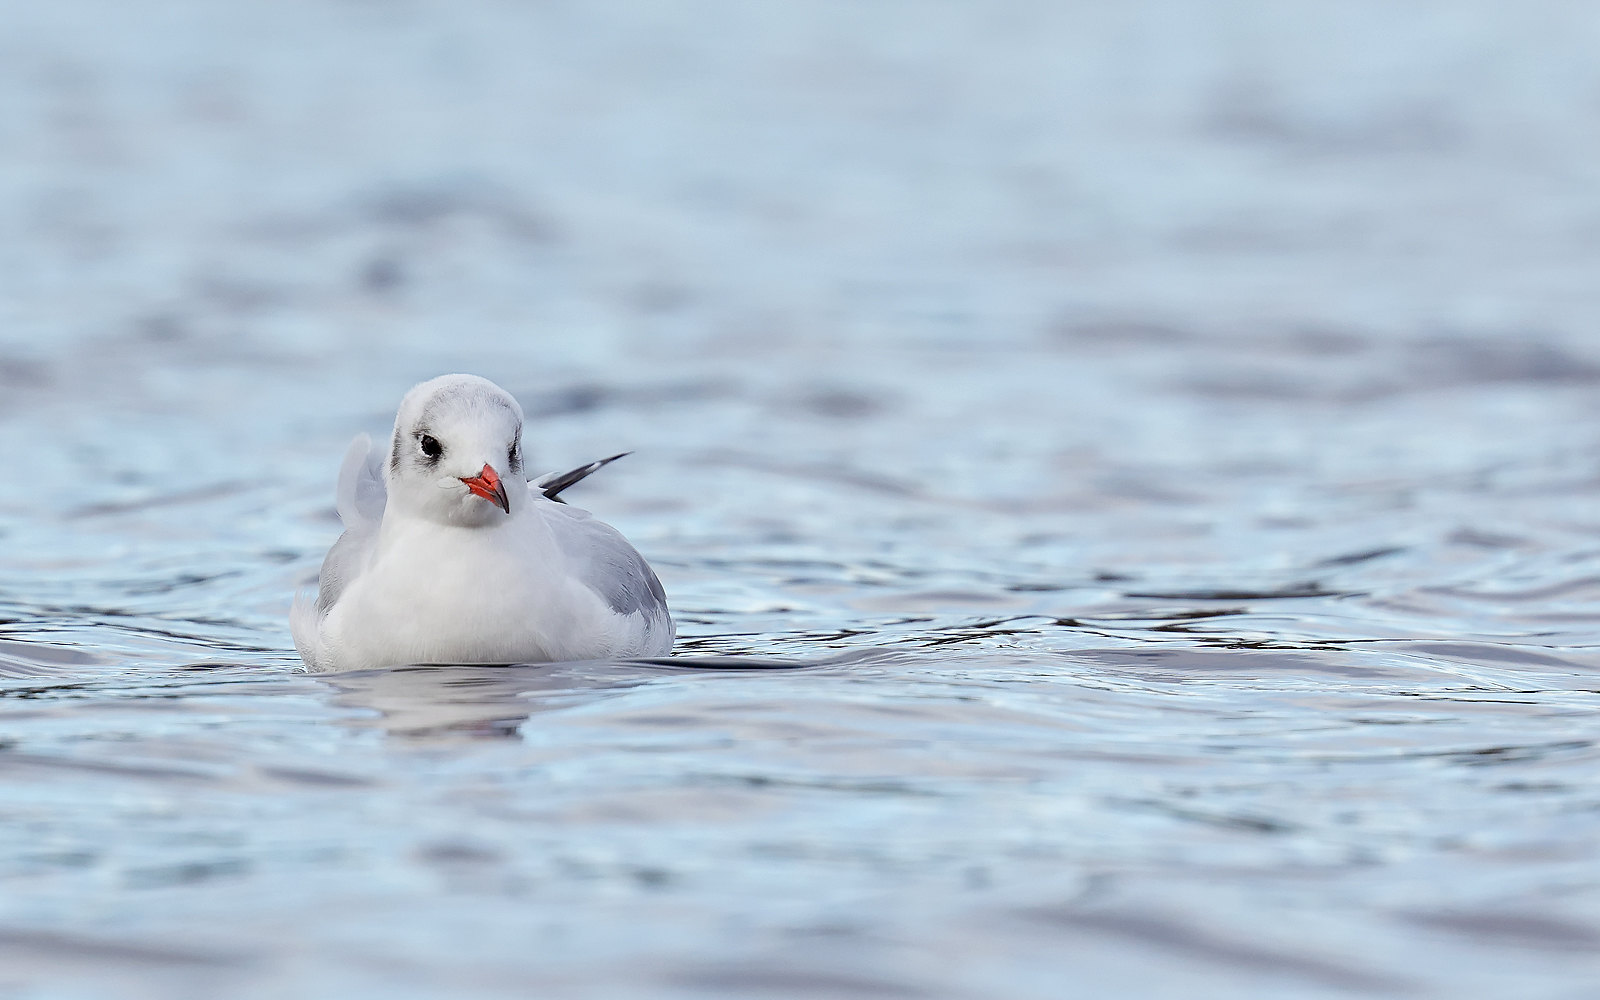 Black-headed Gull - adult winter